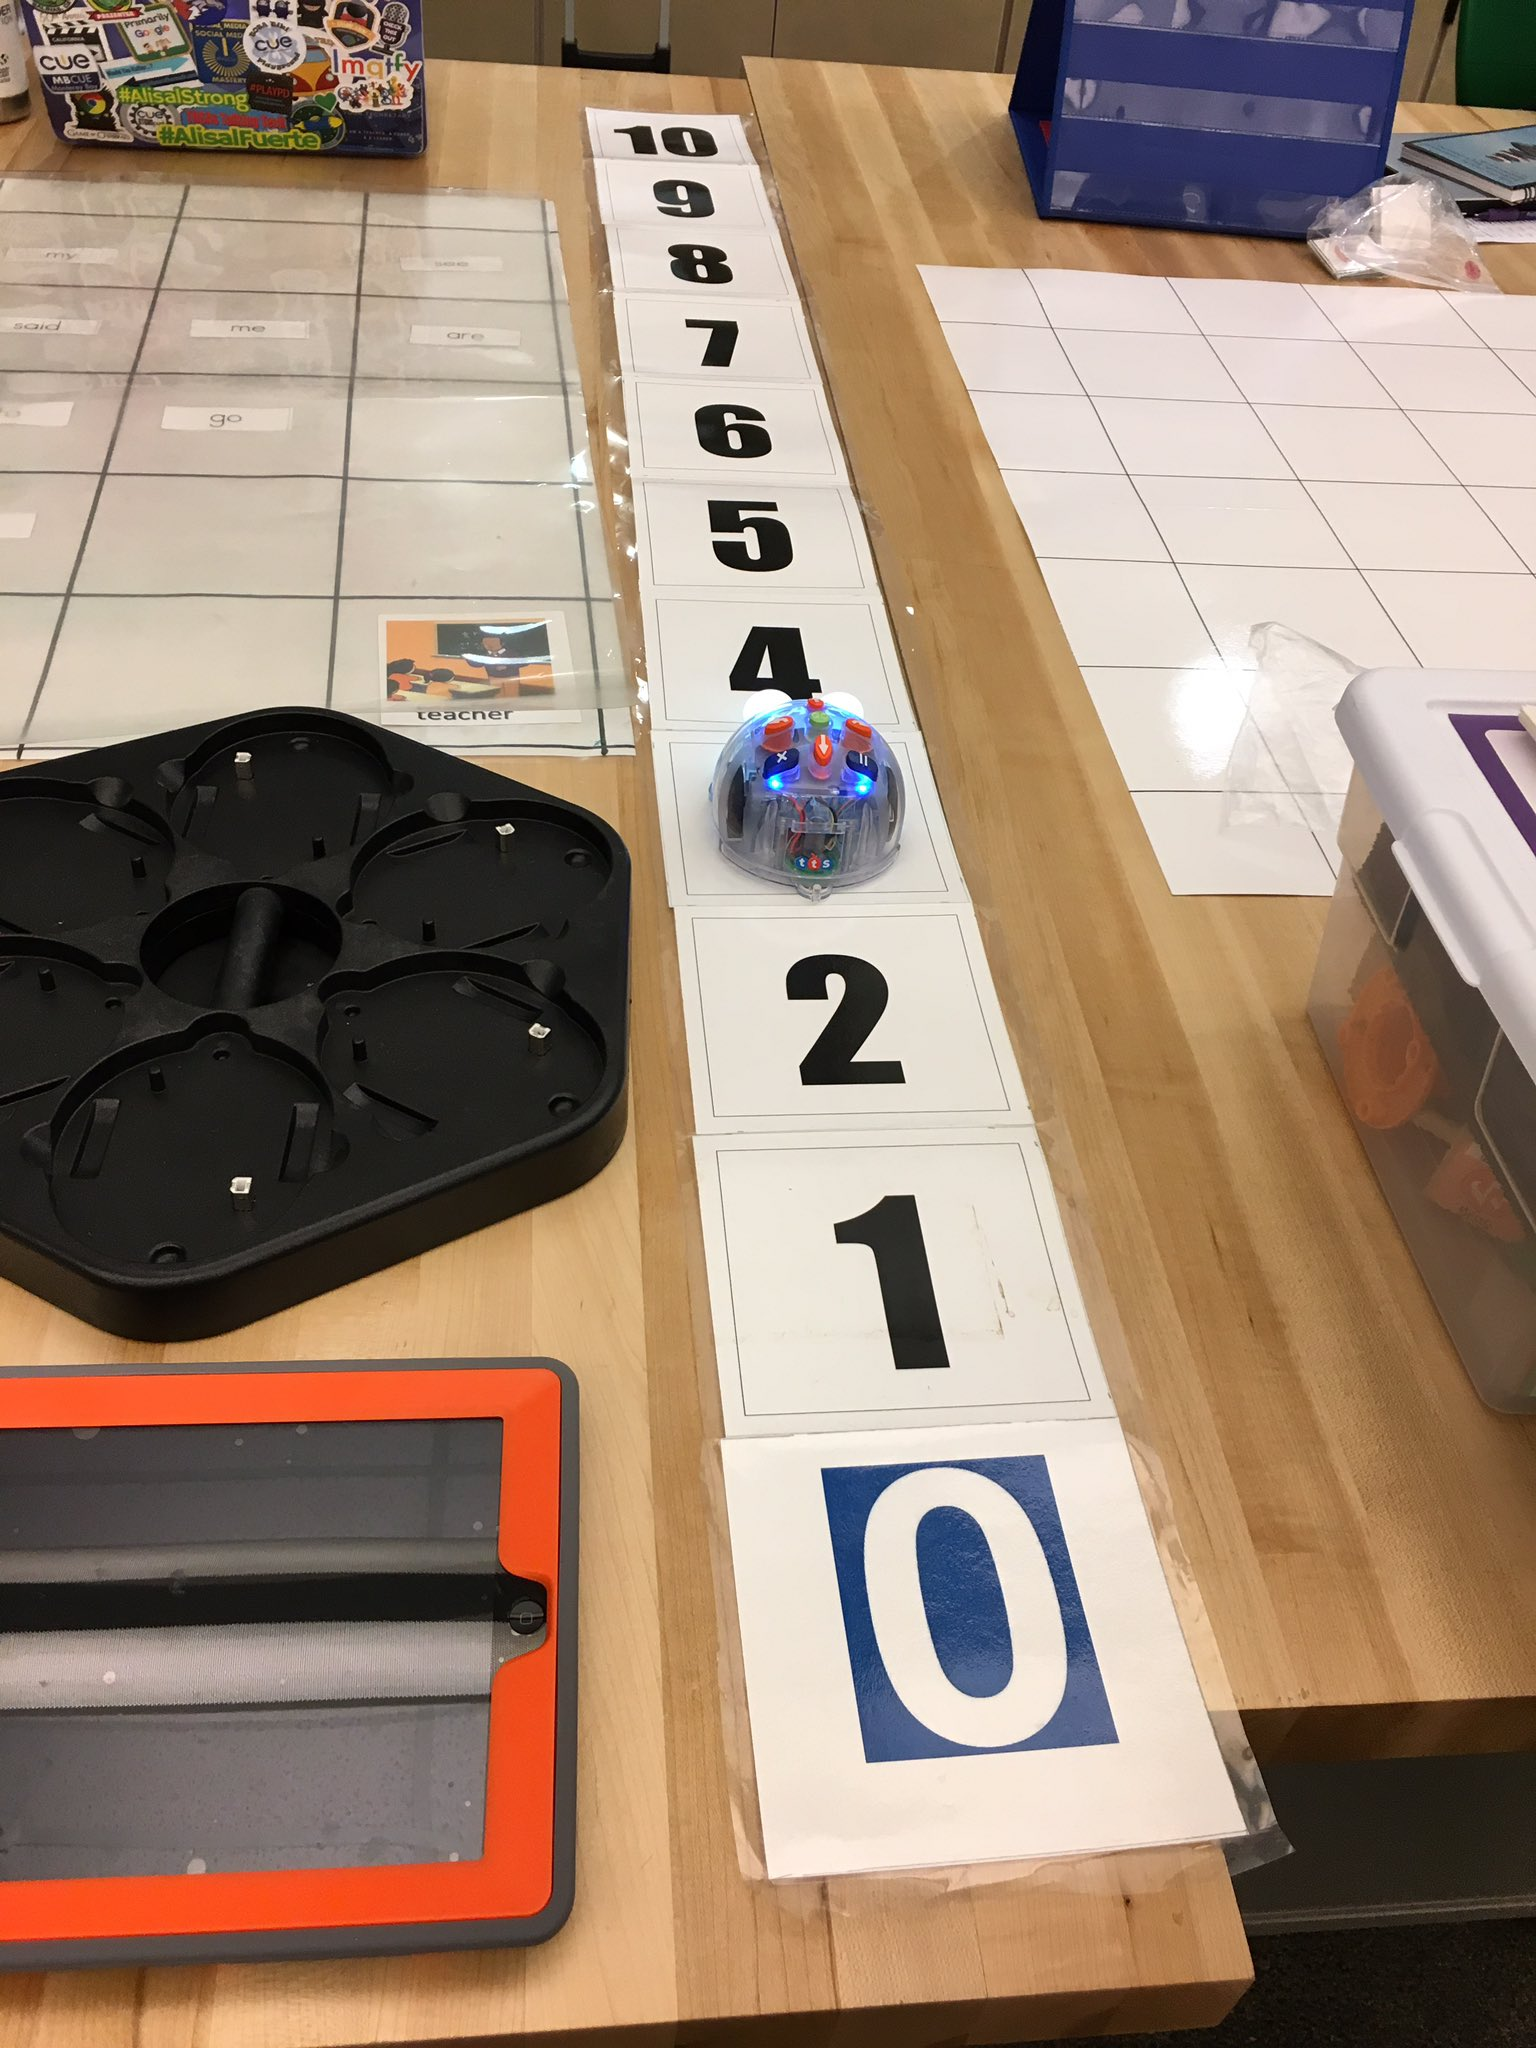 Great sesh @ #svcue on #kinderbotics with Manuel Munguia! Love the use of #BeeBot for add'n & subt'n skills using a linear grid. #usdlearns https://t.co/XF9kWq2Ja2